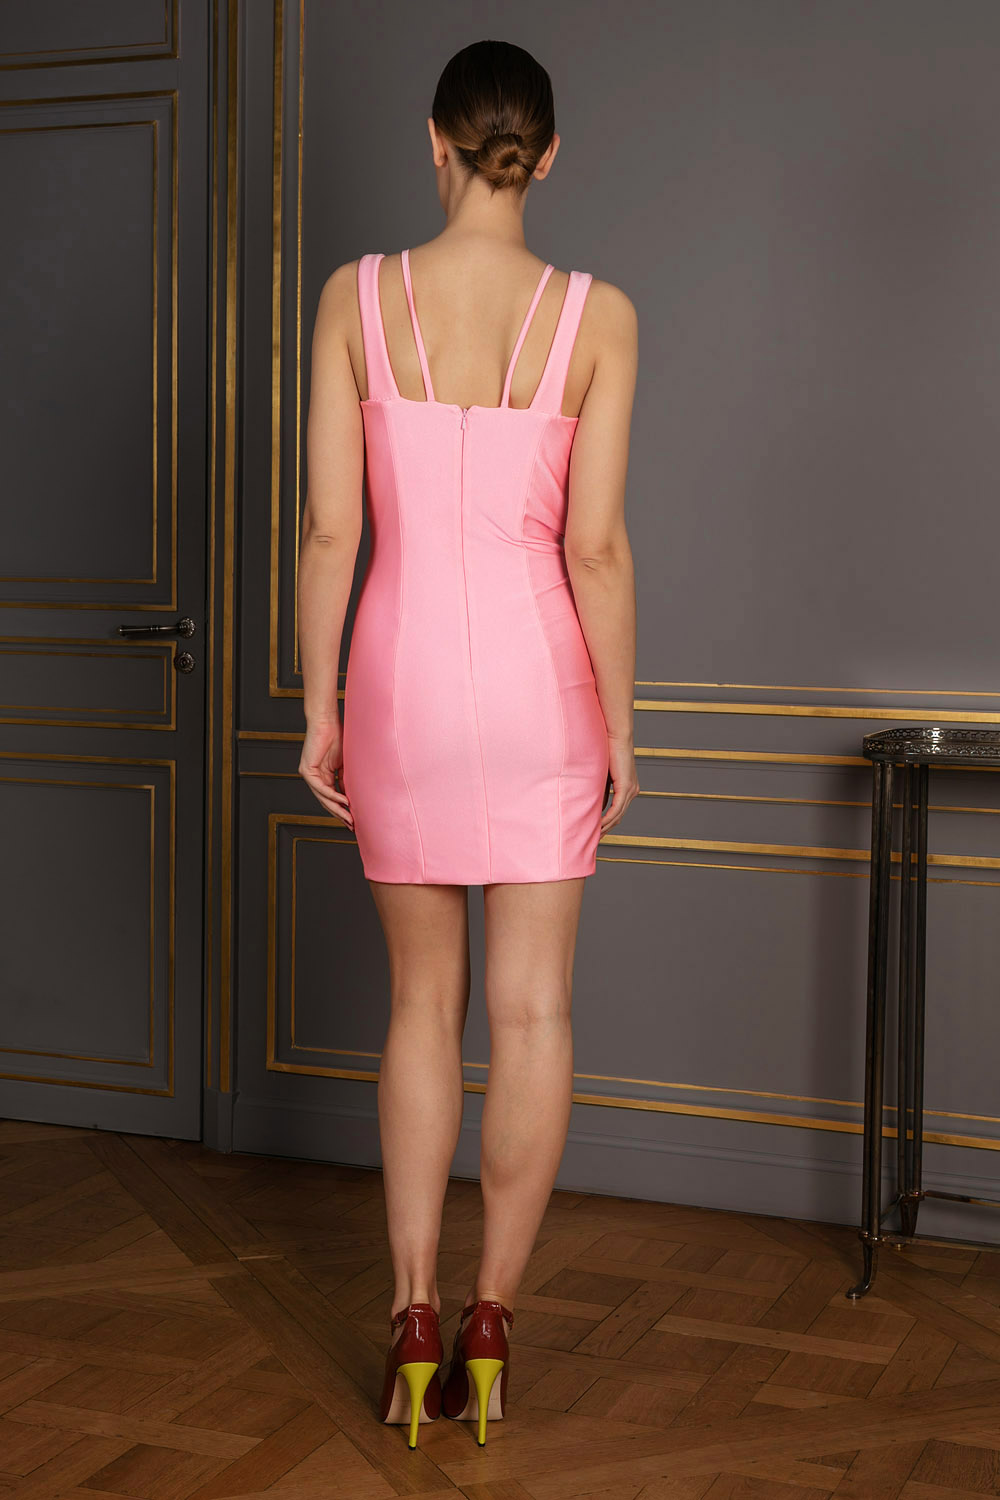 Hot pink stretchy satin body-con mini dress